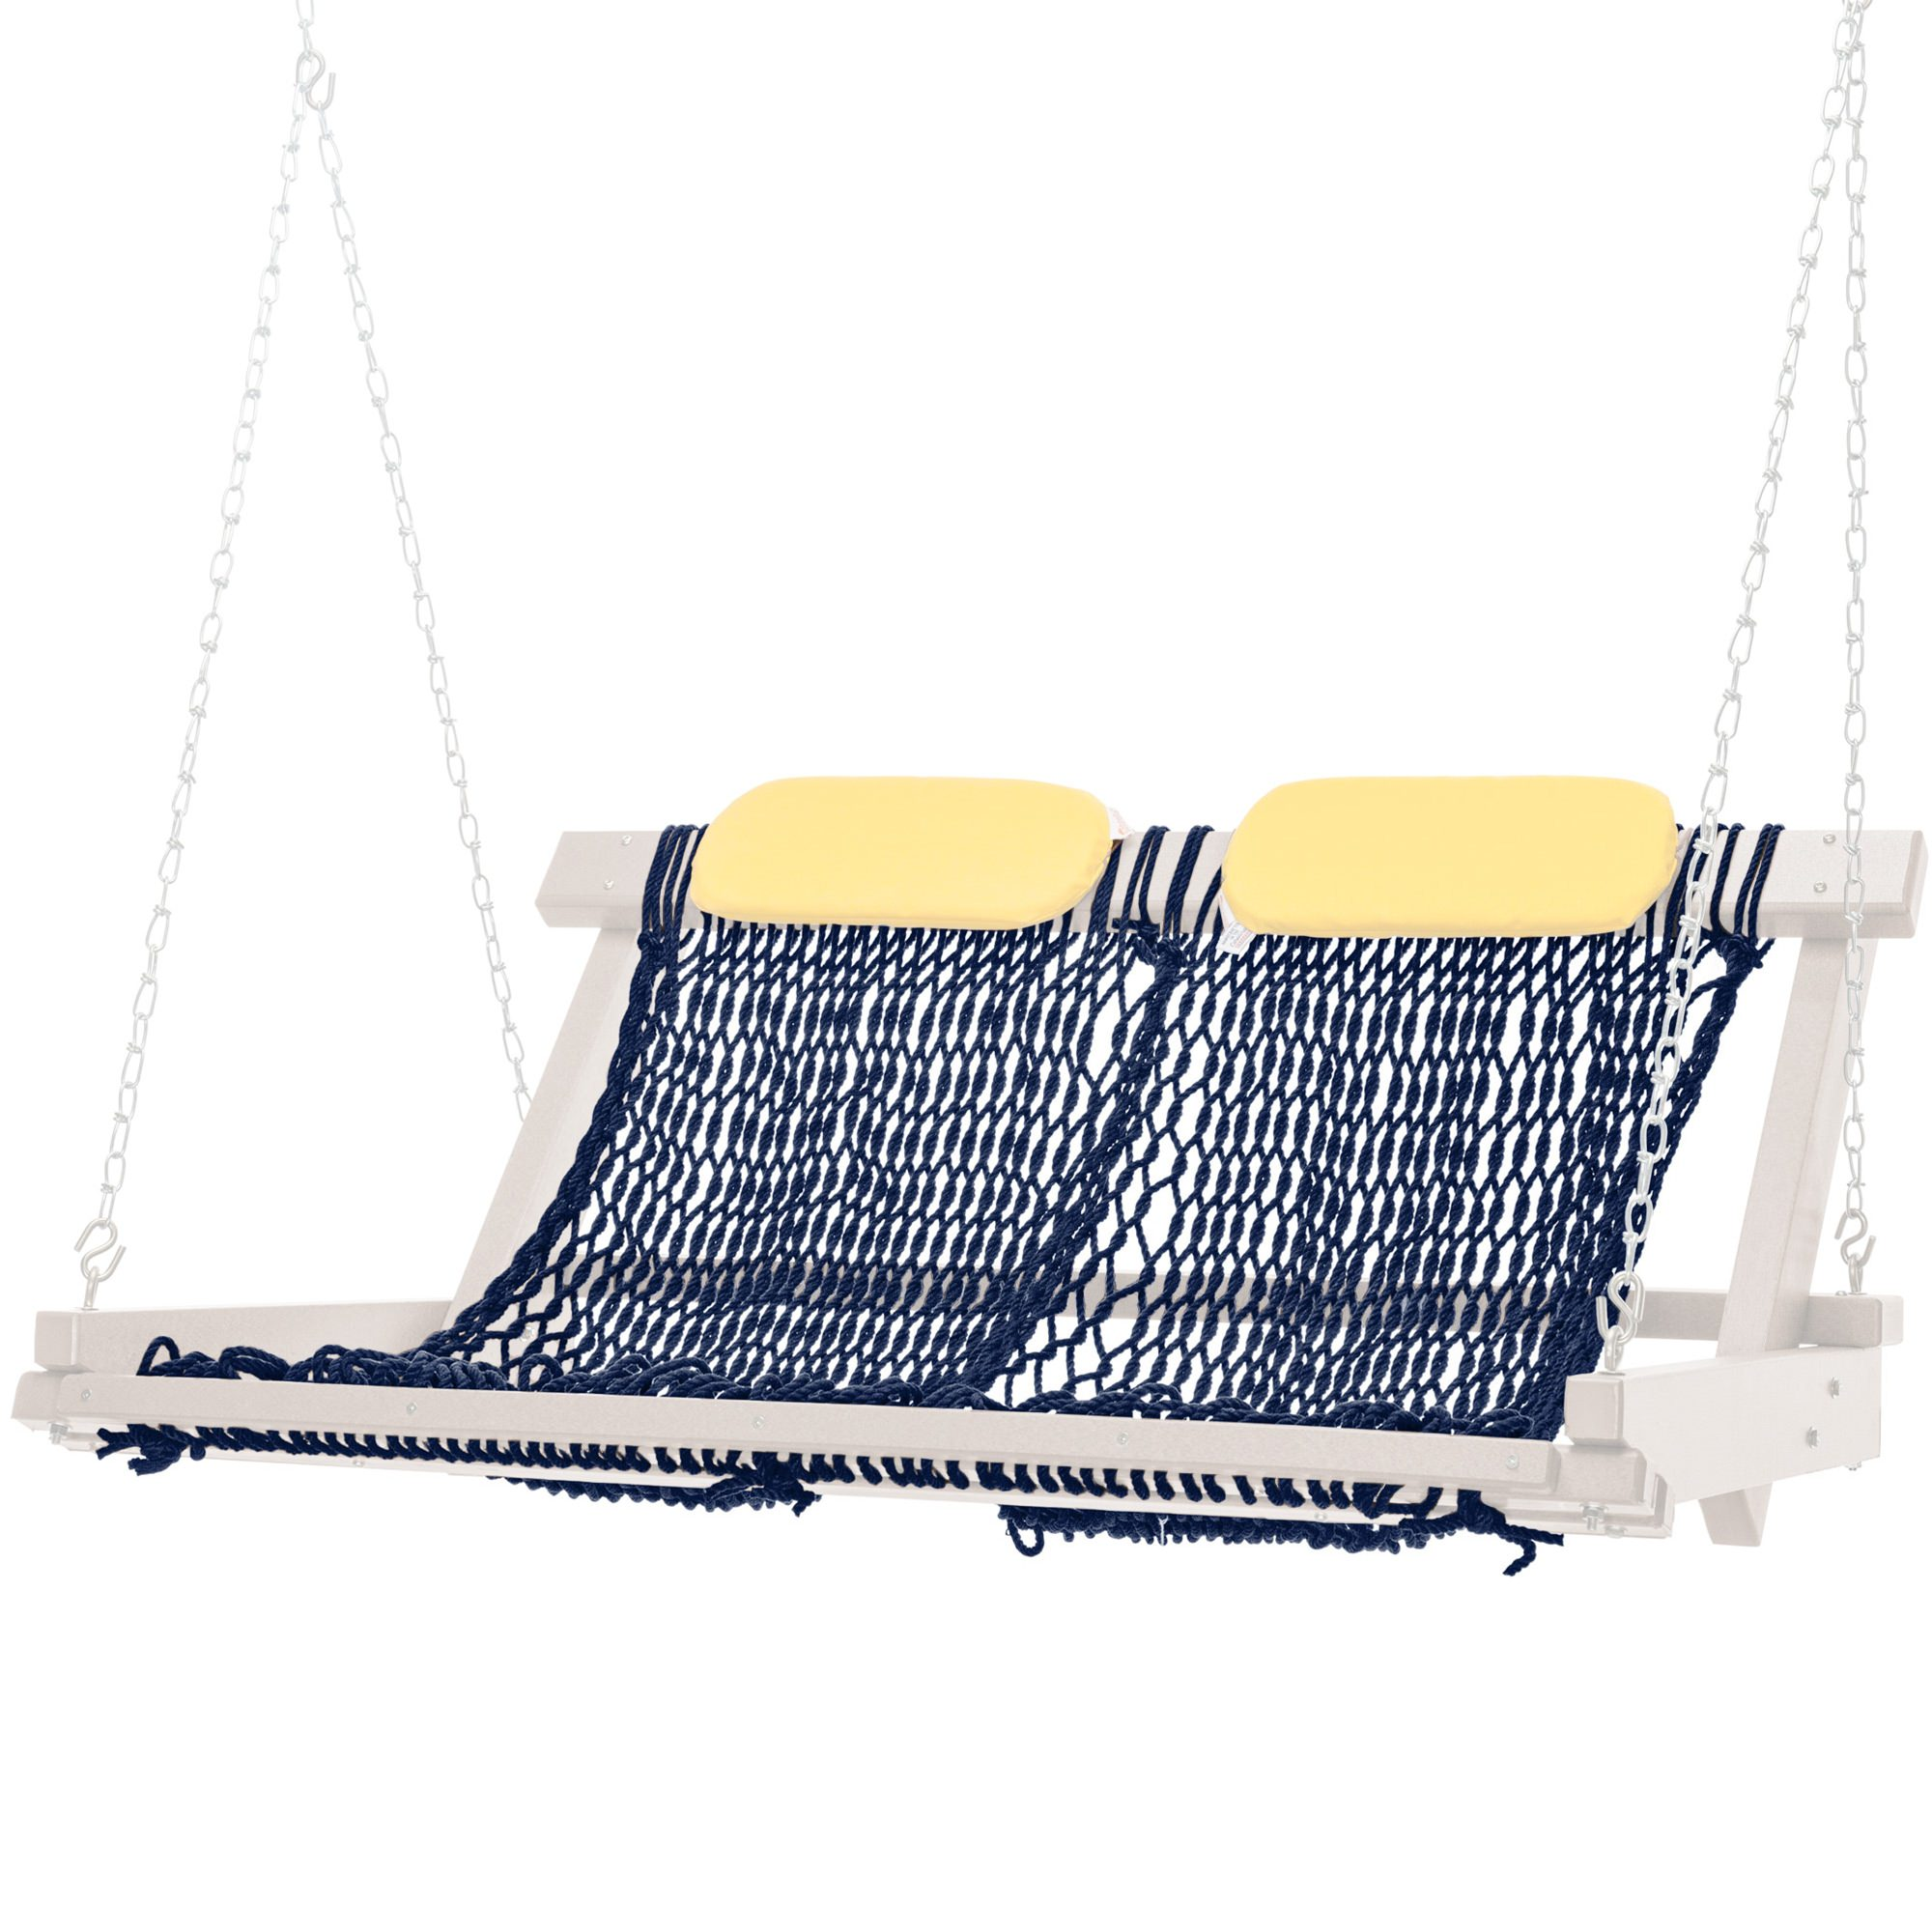 Double Seat Chair Double Chair Swing Seat